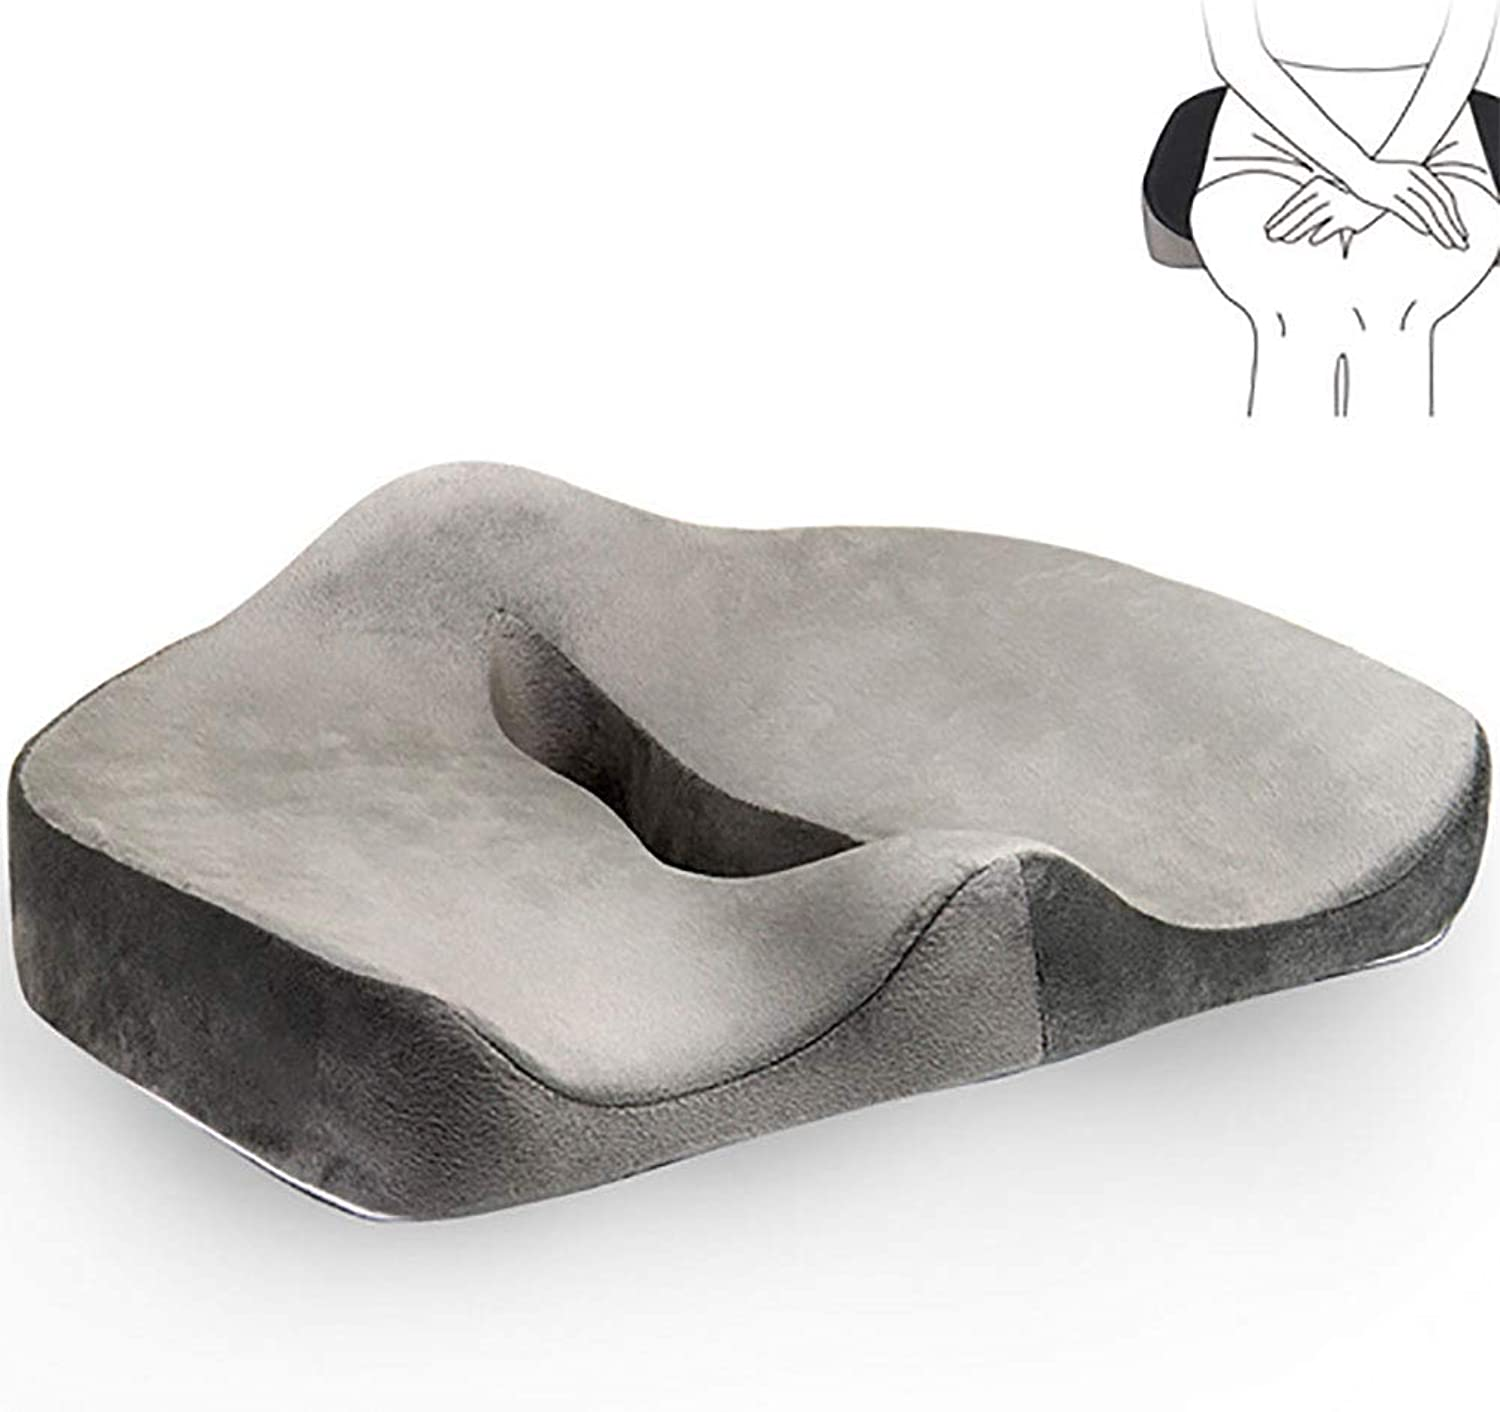 Seat Cushion for Car or Office Memory Foam Chair Pillow for Orthopedic Sciatica Back Support and Tailbone Pain Relief (45  38  13cm)